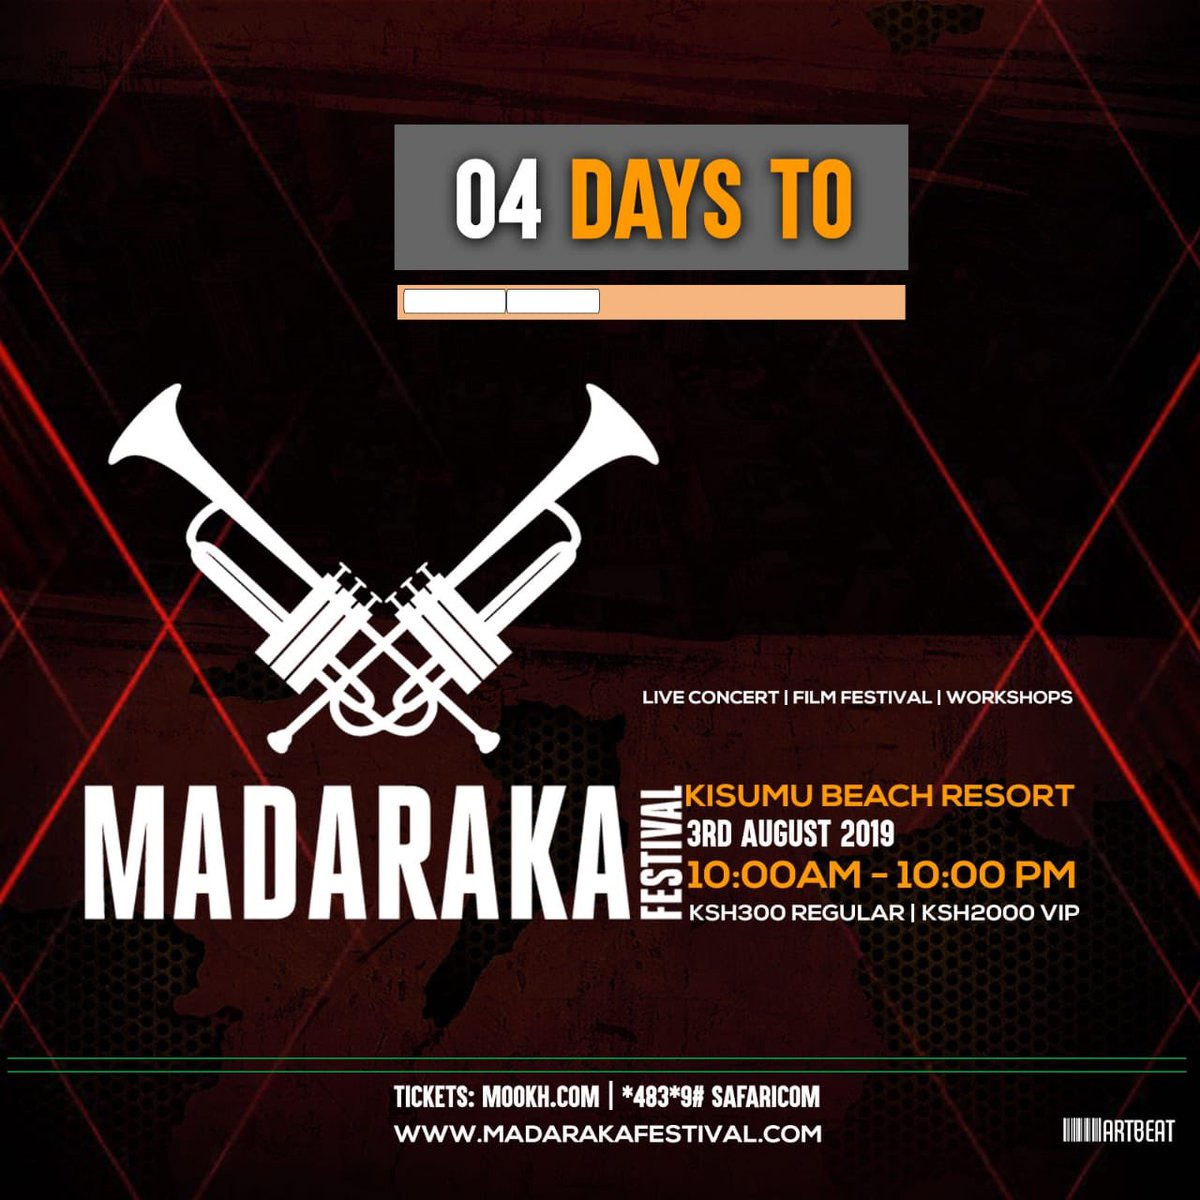 Bring a sister, a brother, a cousin #MadarakaFest2019 is all about bonding with friends and family!